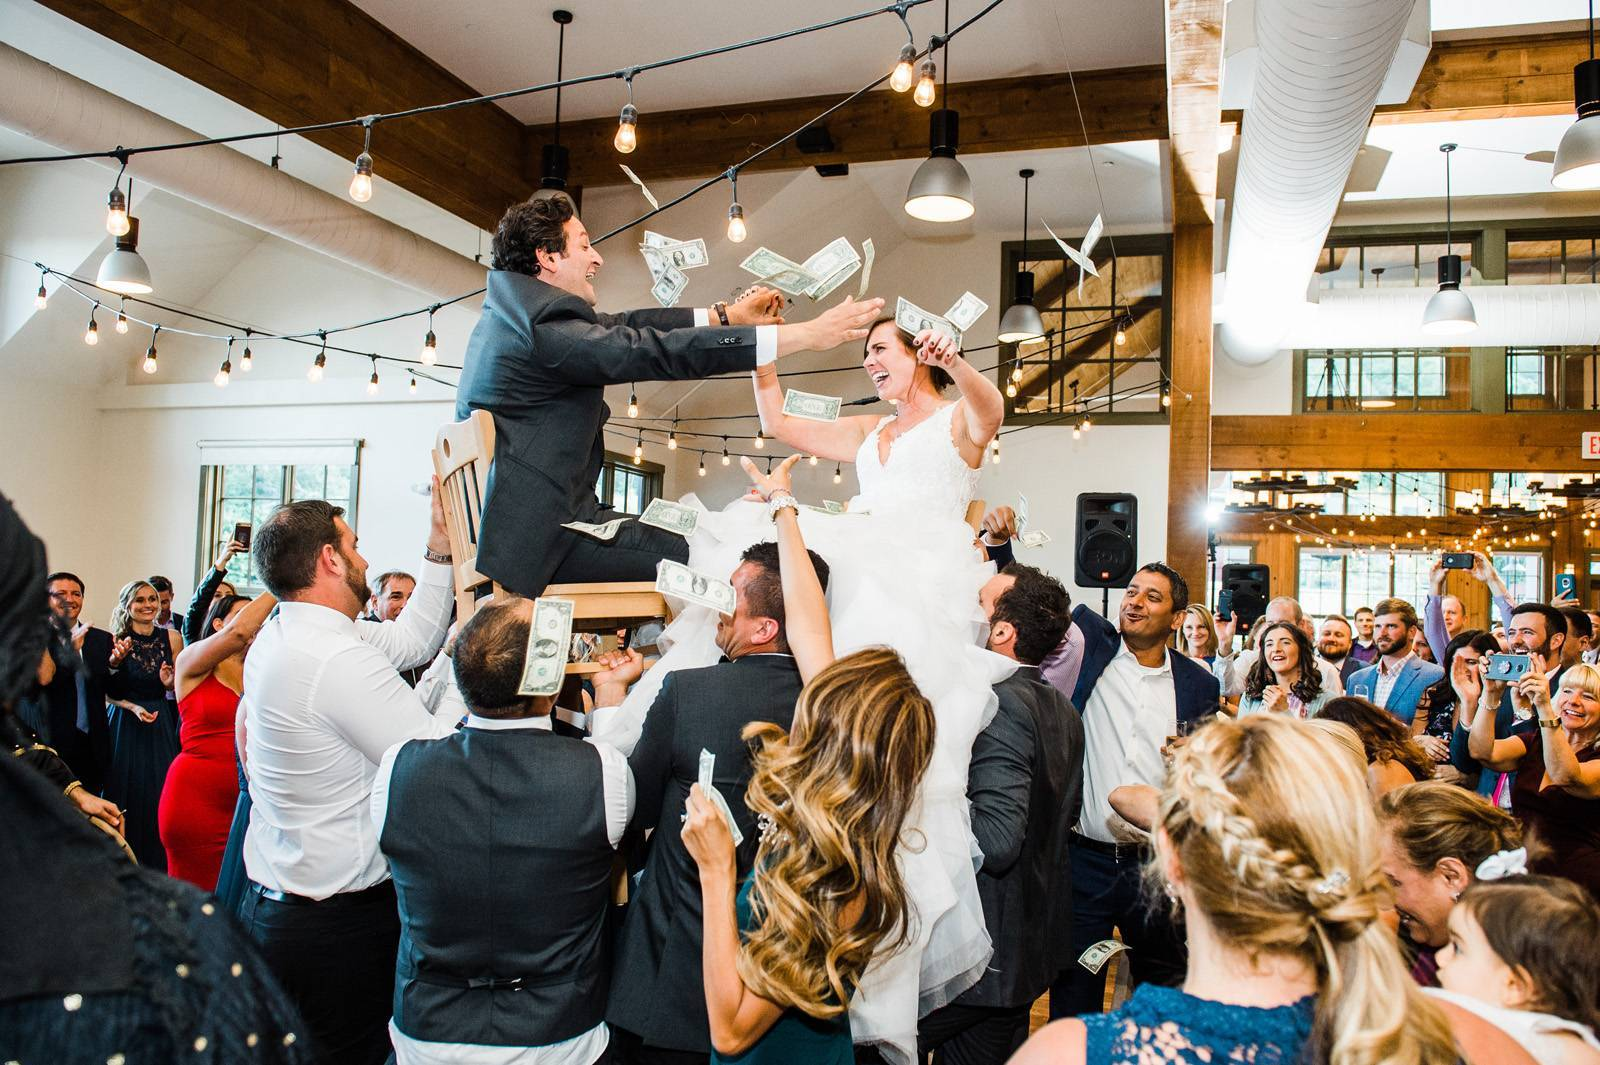 Bride and groom hoisted in chairs at reception by guests